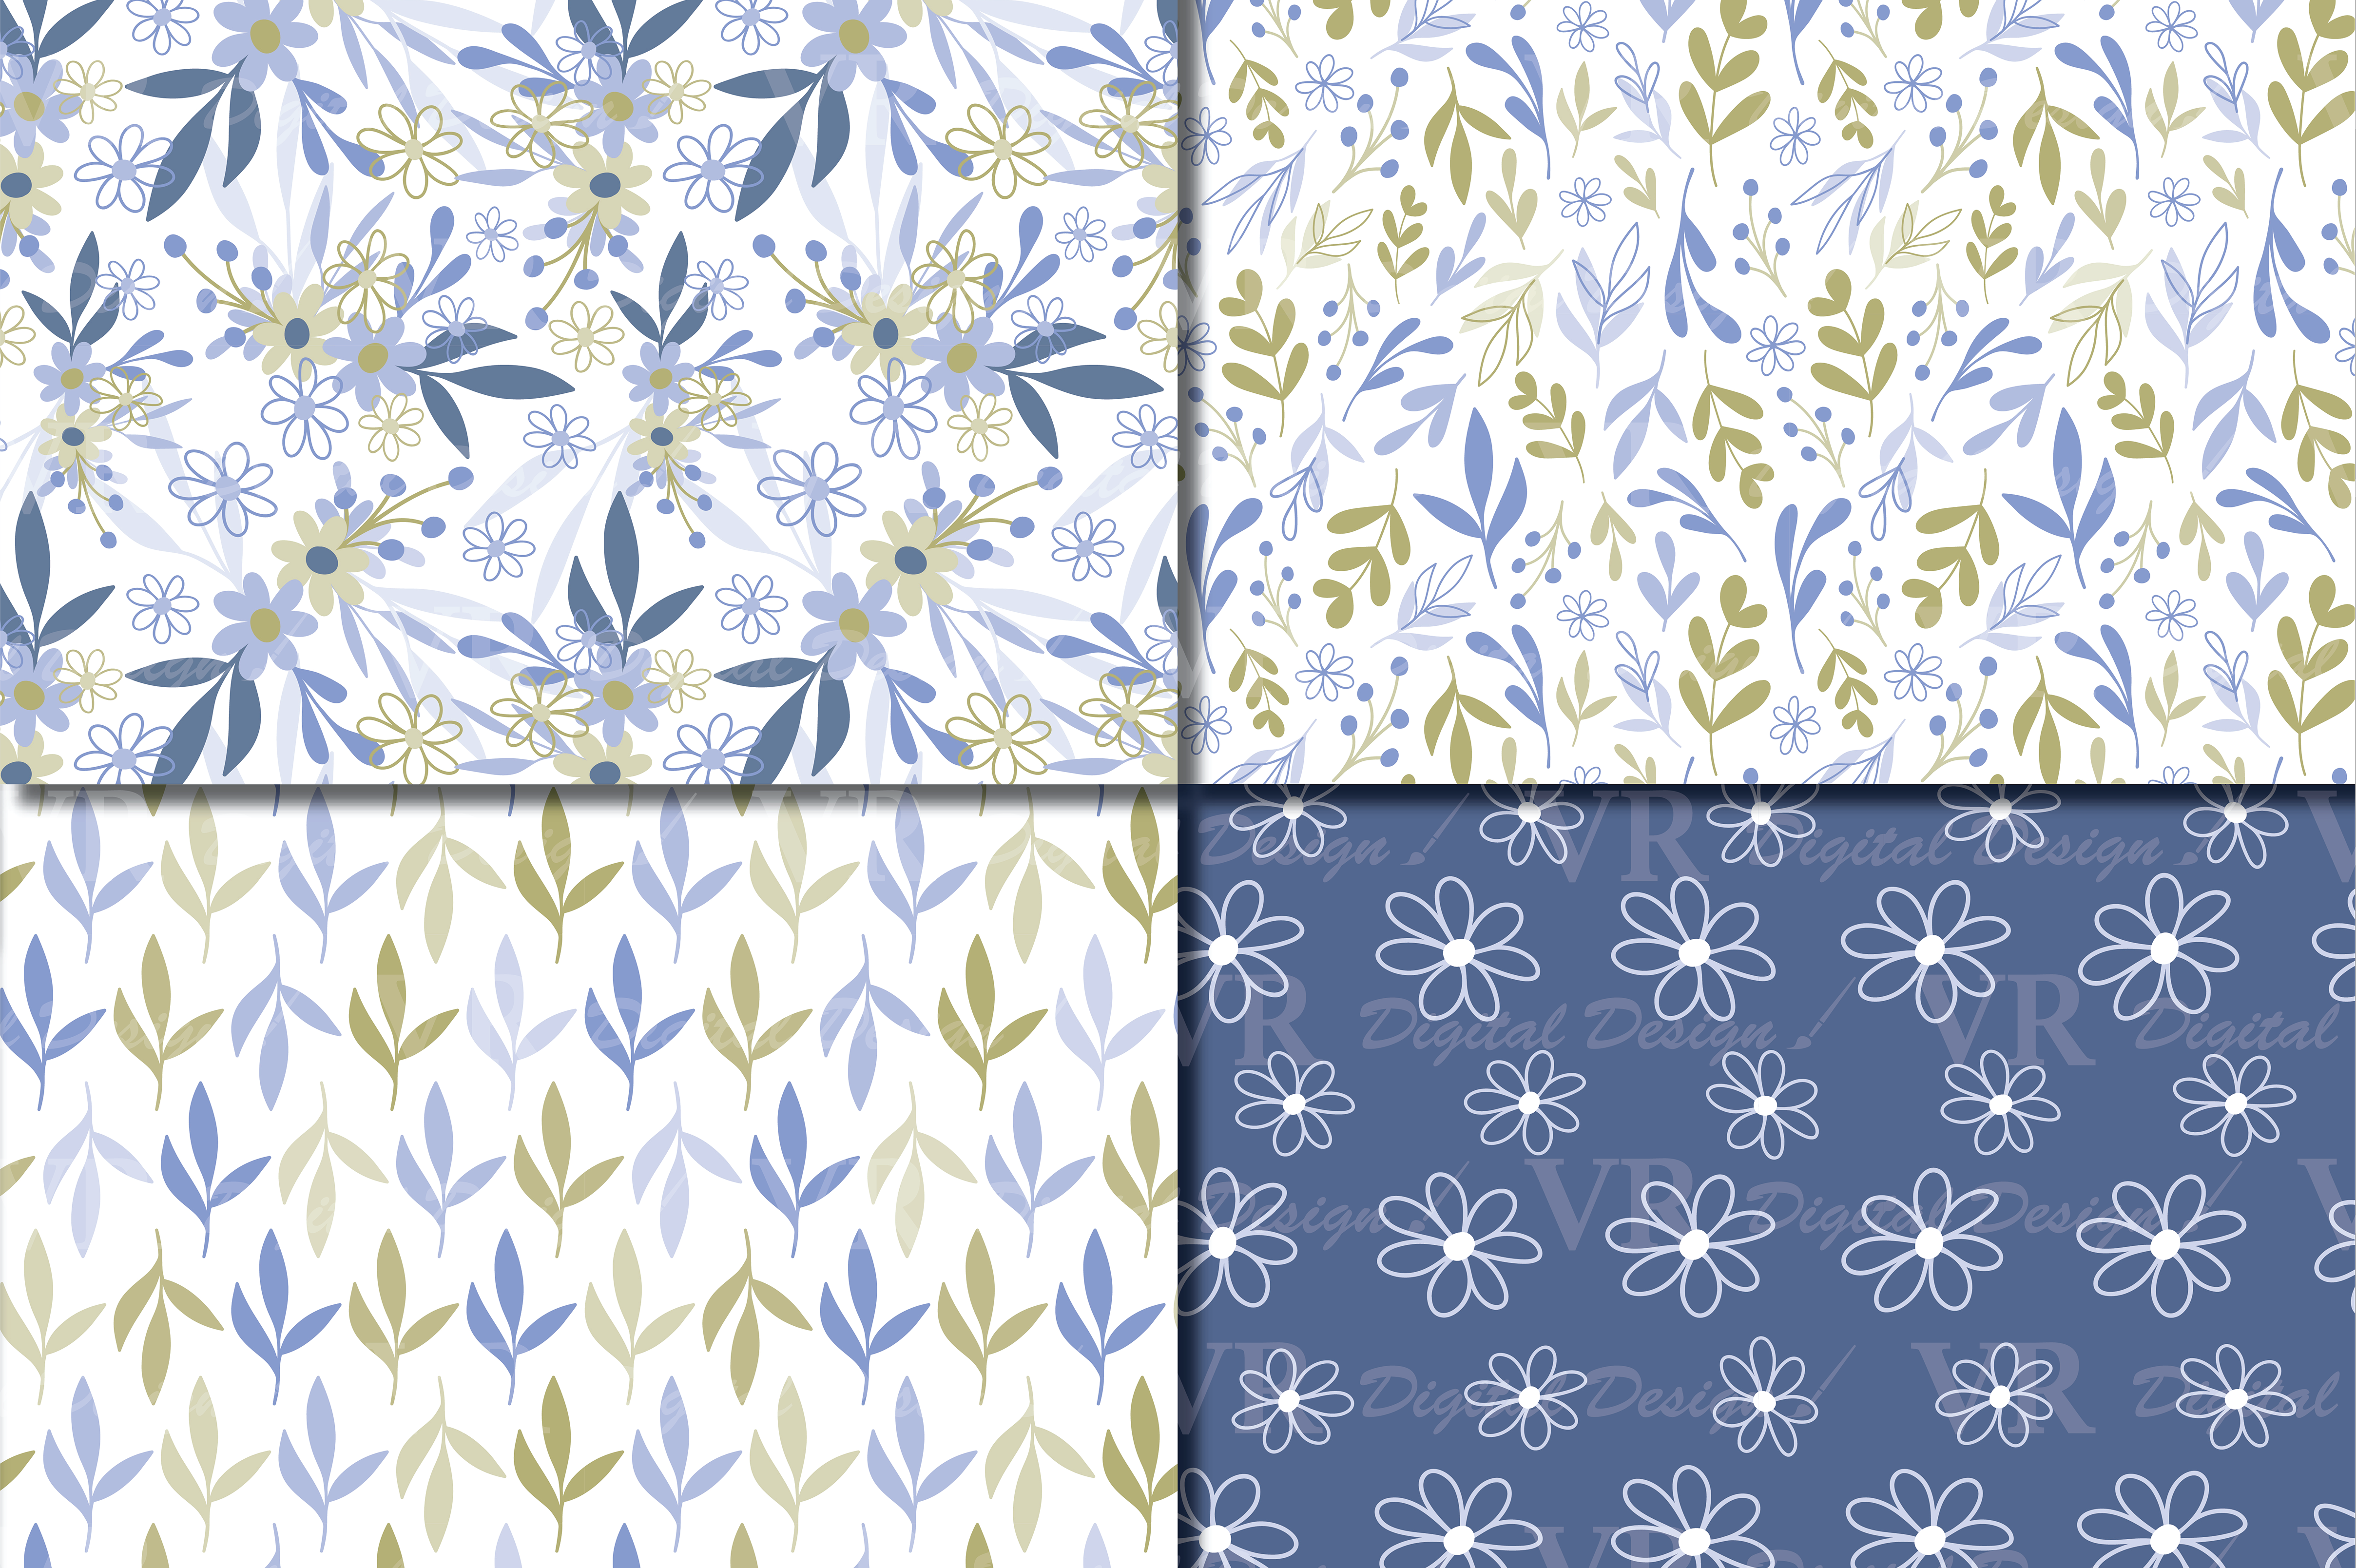 Seamless Blue and Green Hand Drawn Flowers and Leaves Digital Paper / Pastel Foliage Seamless Pattern Graphic Patterns By VR Digital Design - Image 2